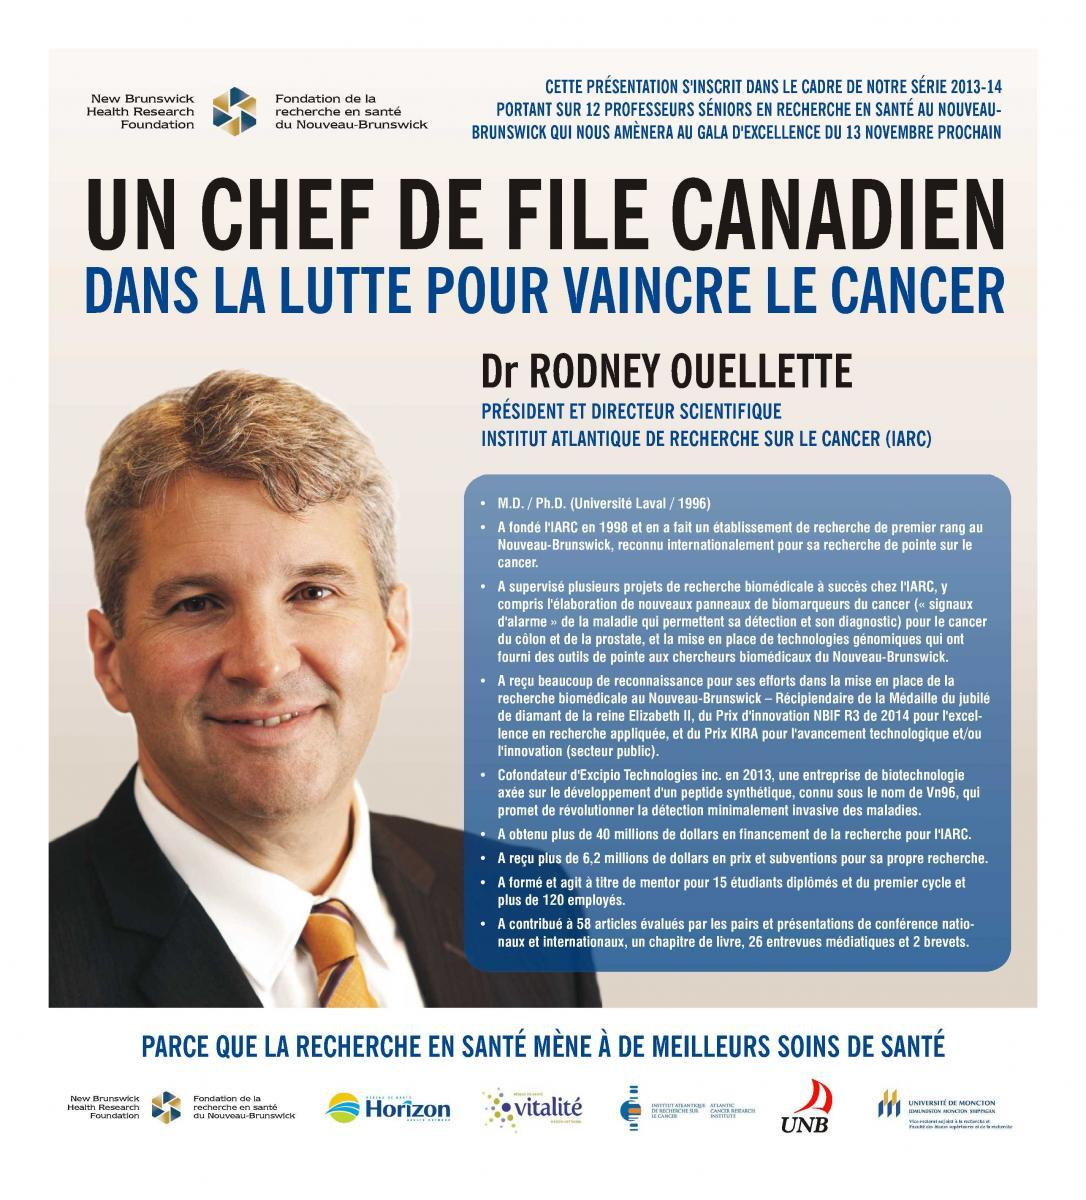 lacadie nouvelle - researcher august ouellette low-rez